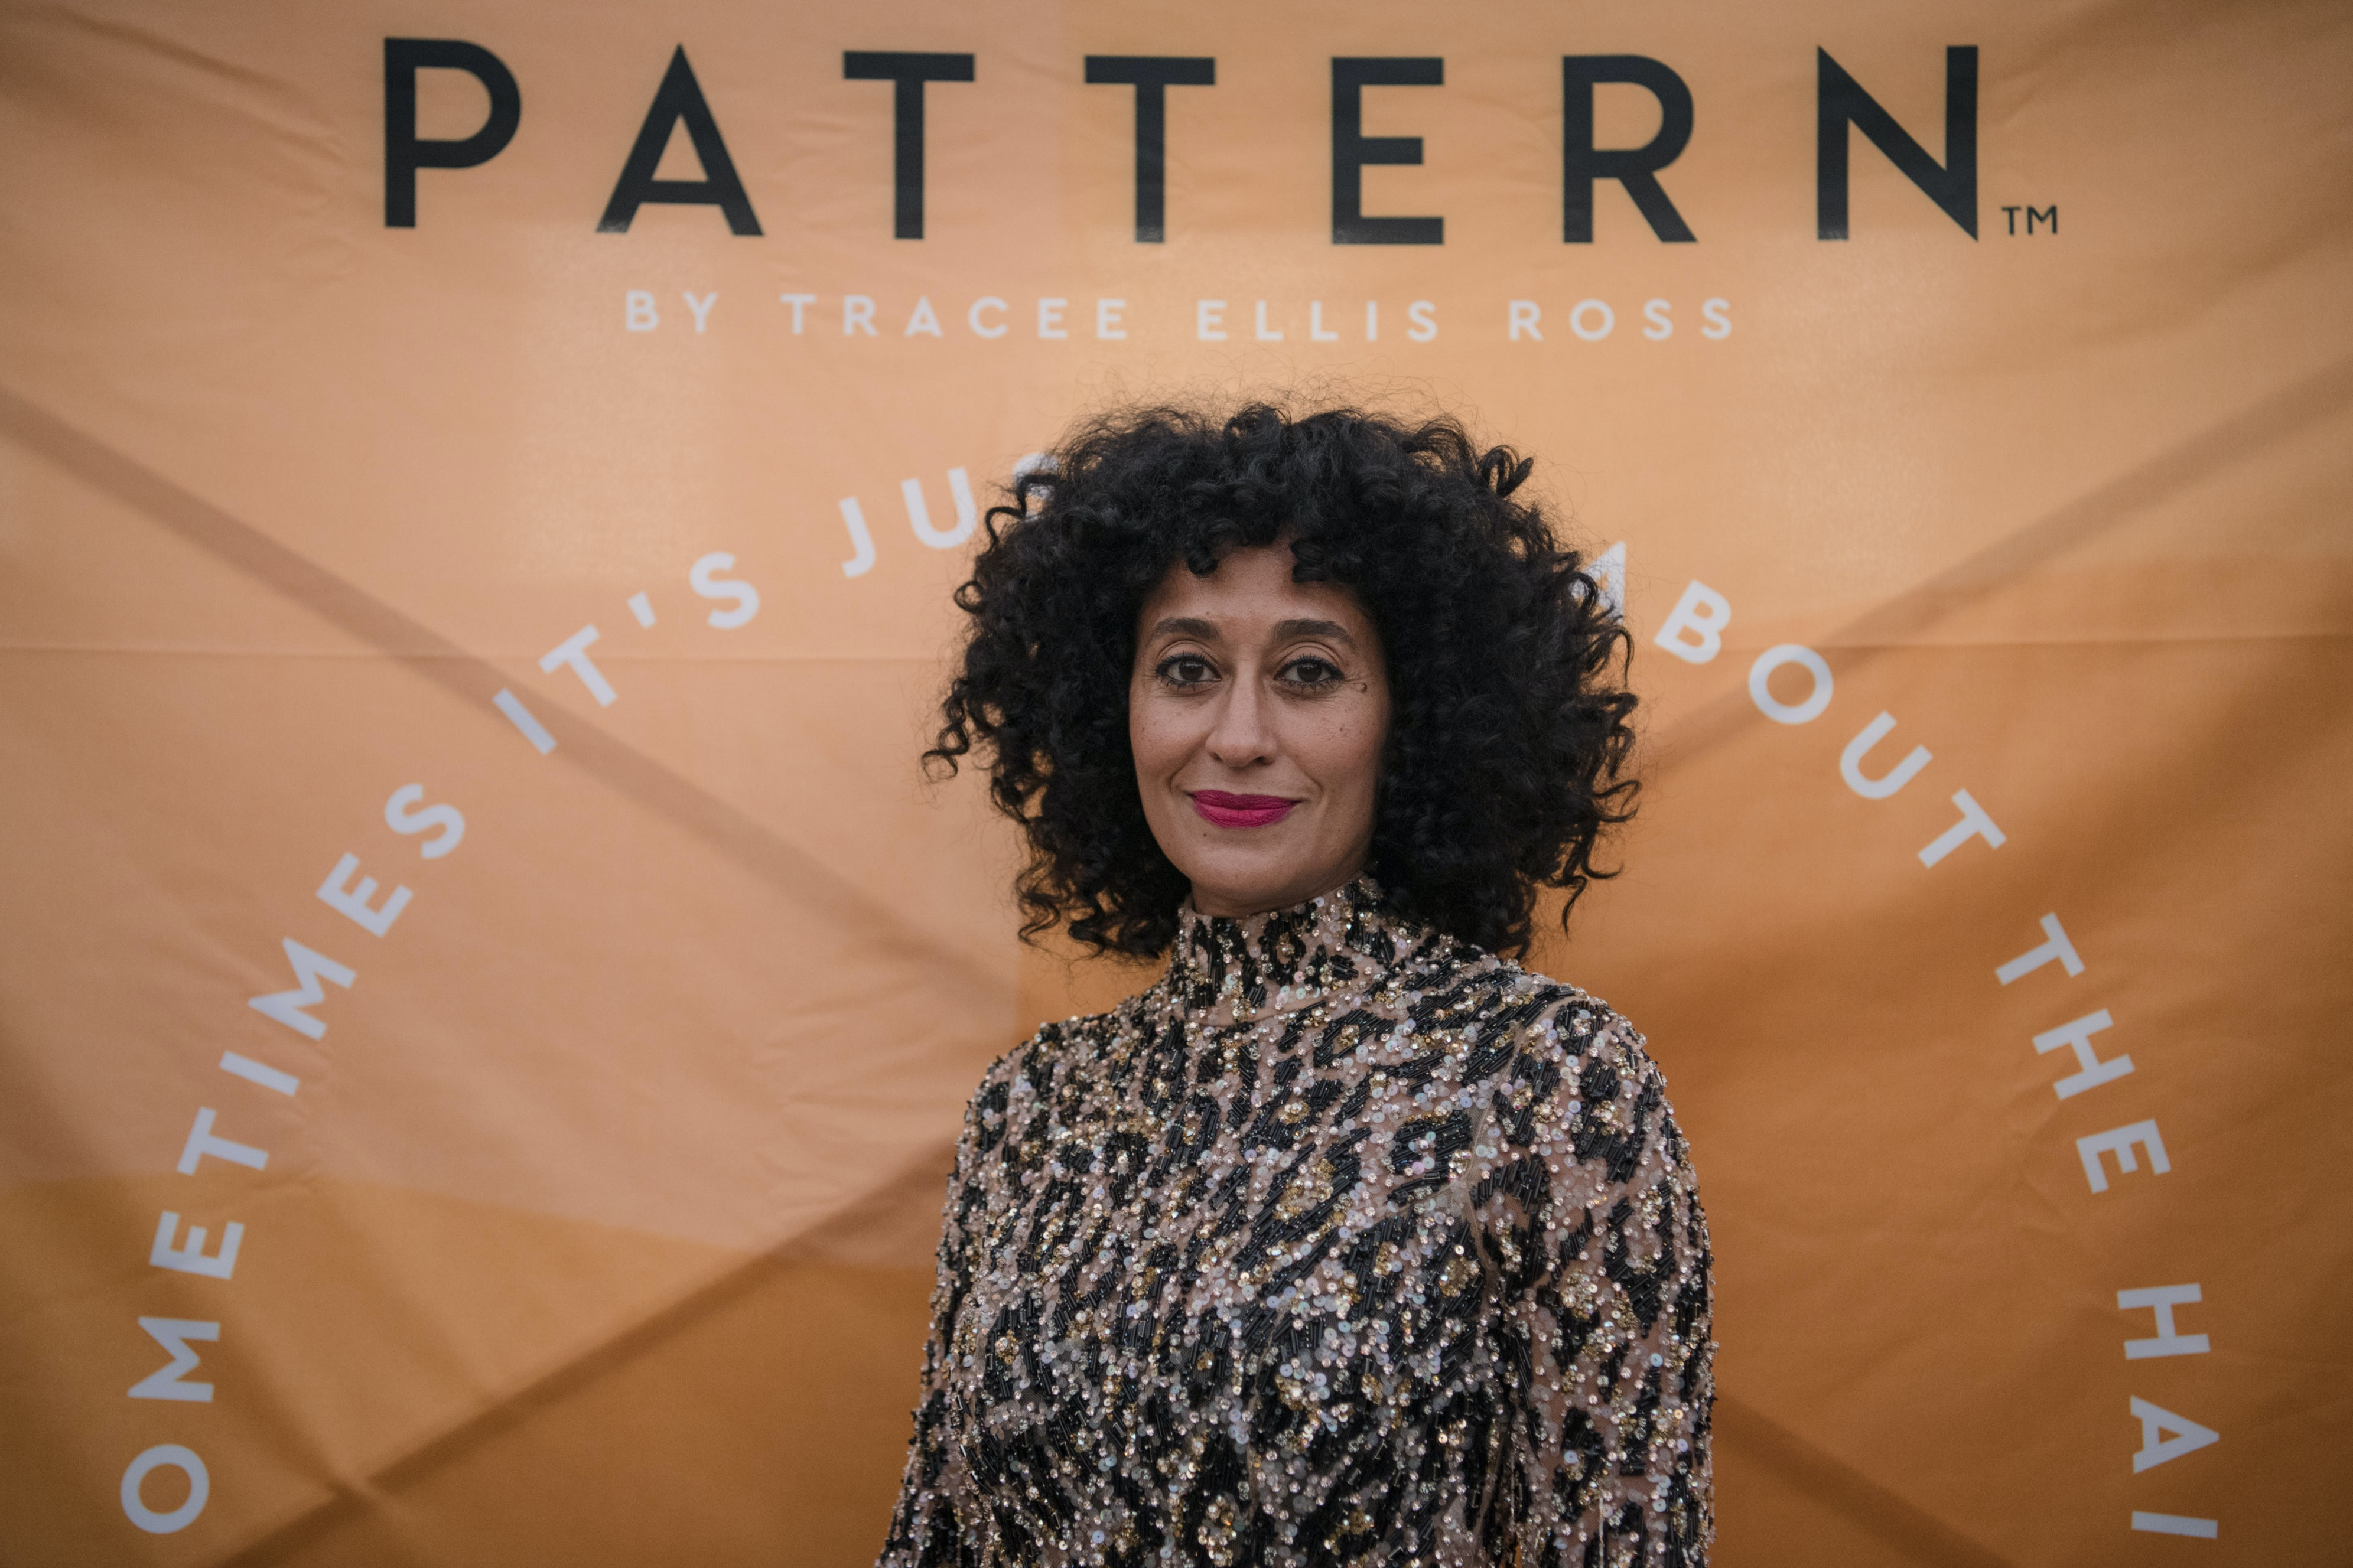 Tracee Ellis Ross's Pattern haircare brand is also exclusively sold at Ulta | Source: Getty Images